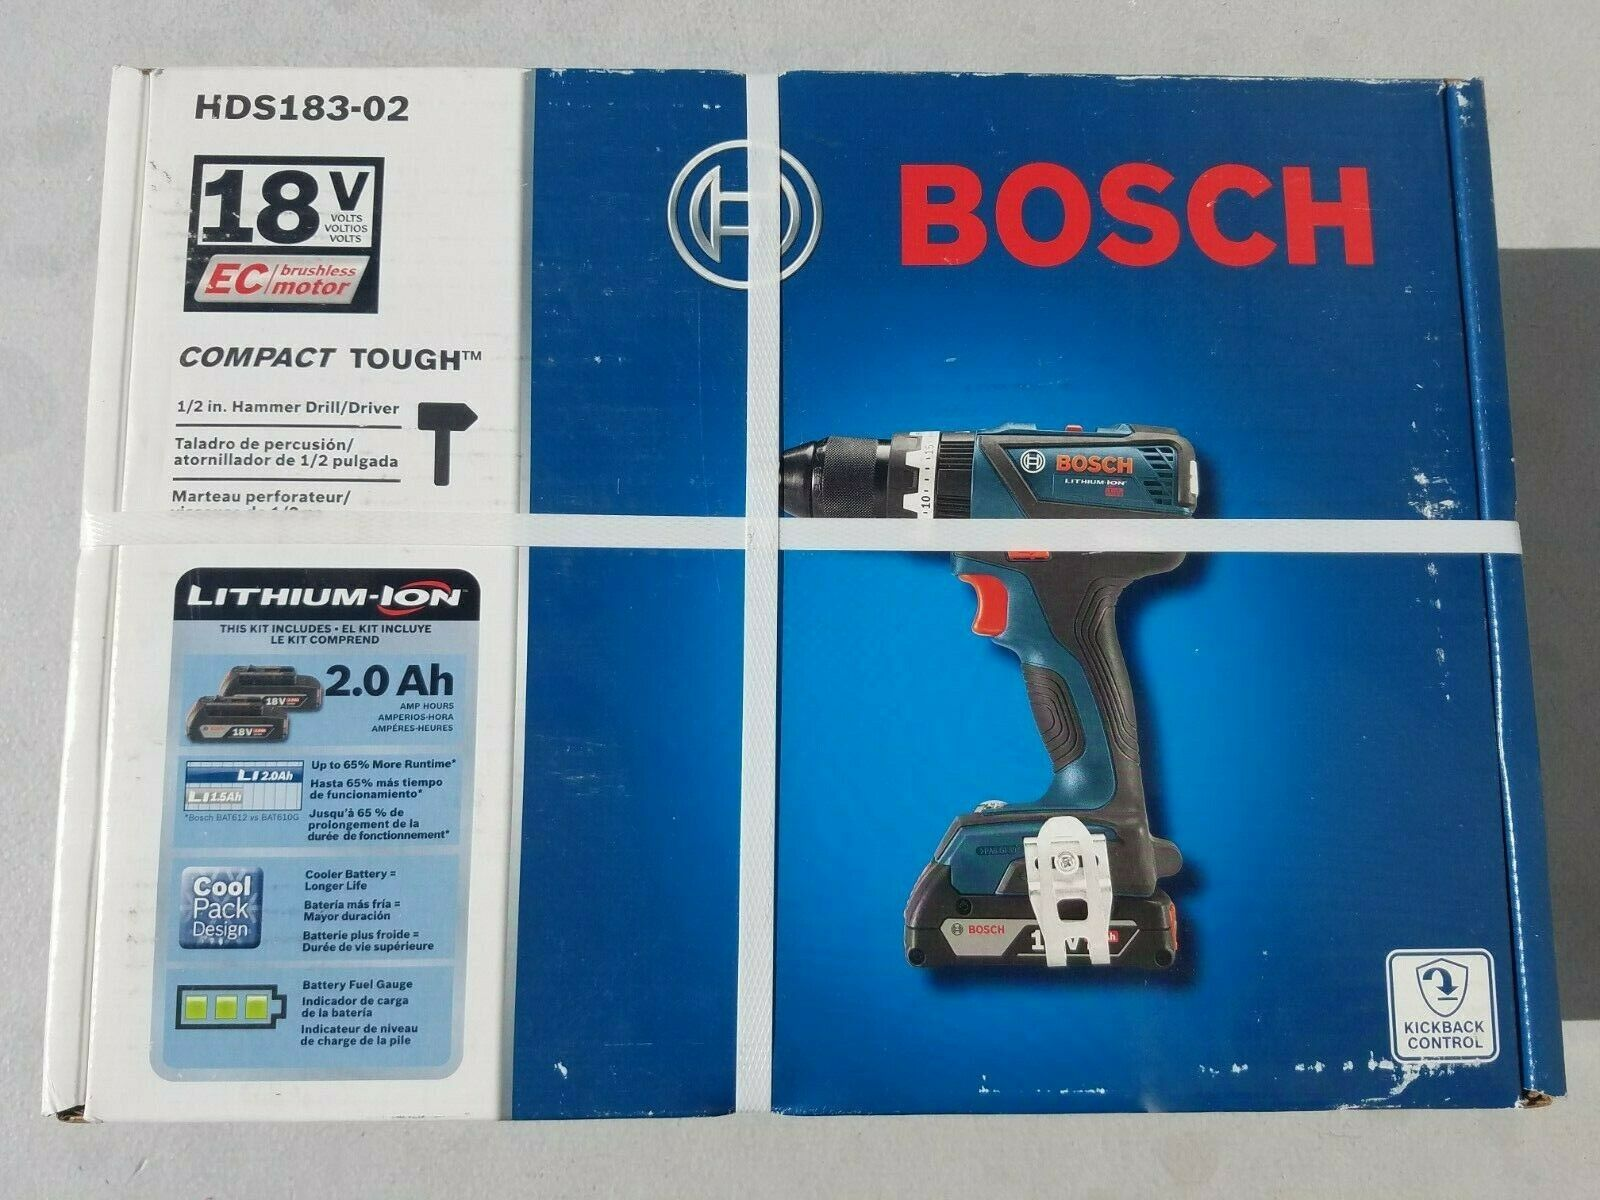 Bosch HDS183-02Compact Tough 18V 1//2 in Hammer Drill//Driver Kit Brand New.